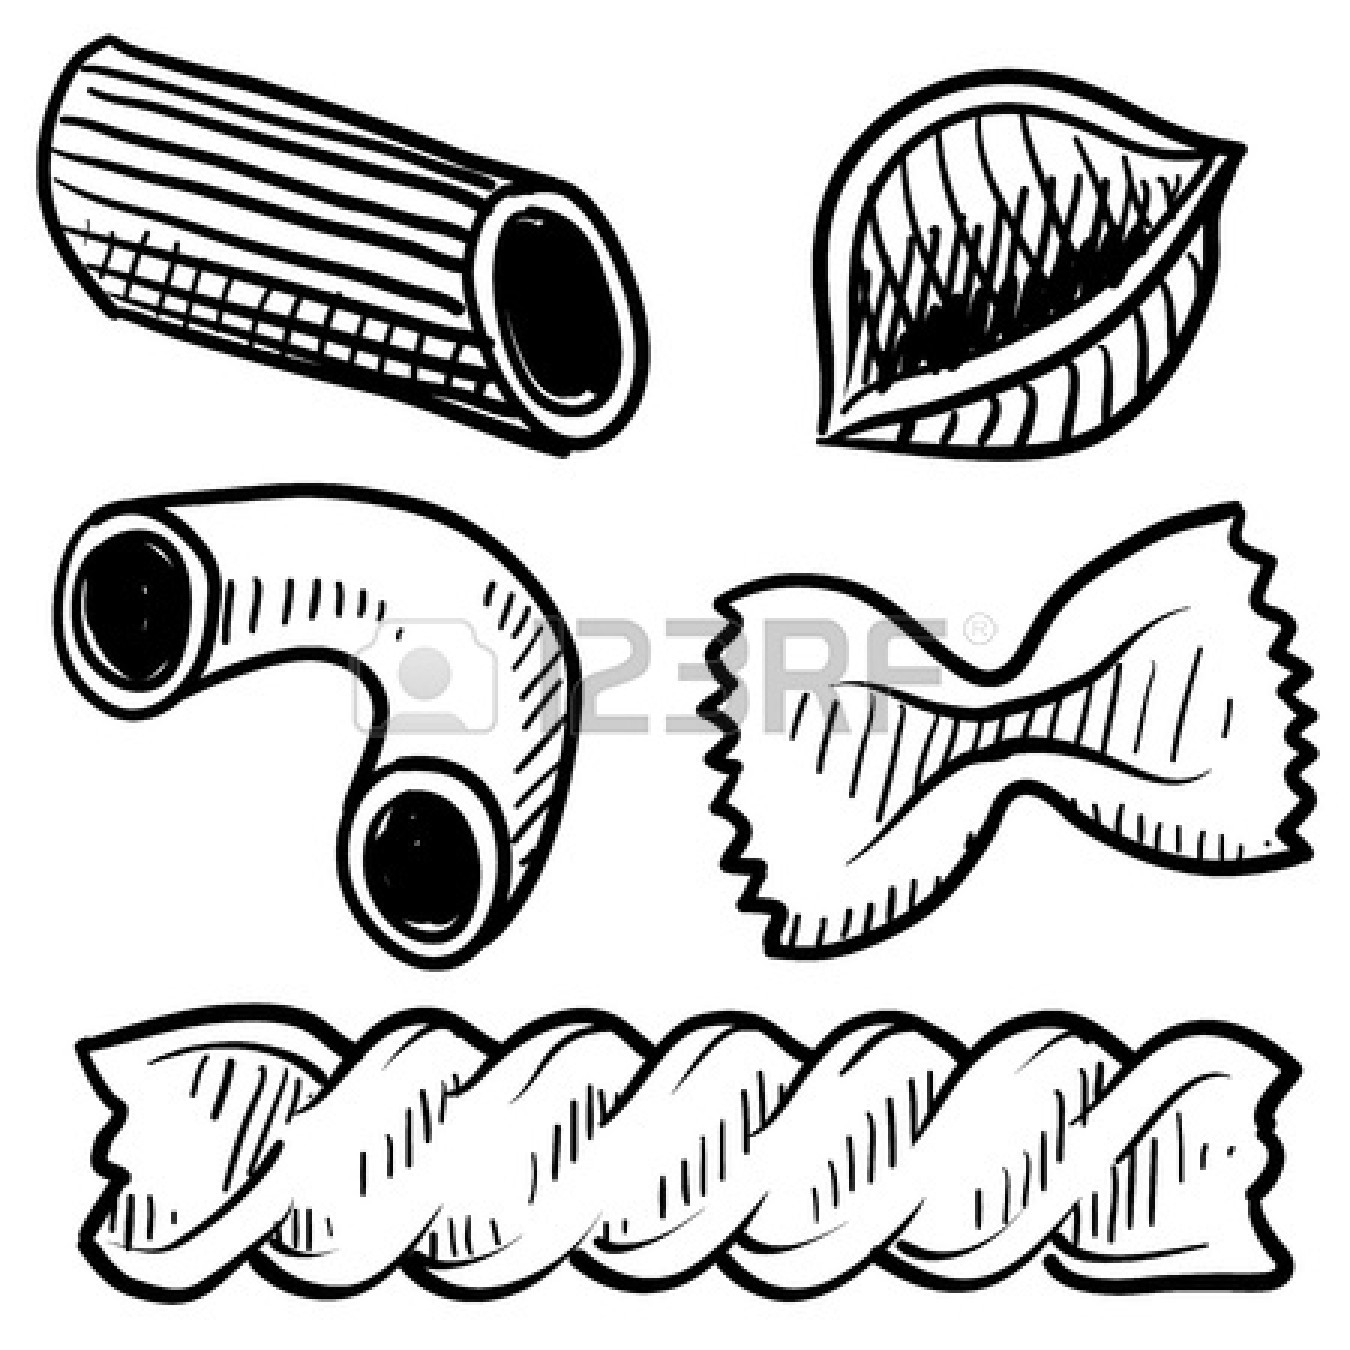 Pasta black and white clipart the image for Italian food coloring pages